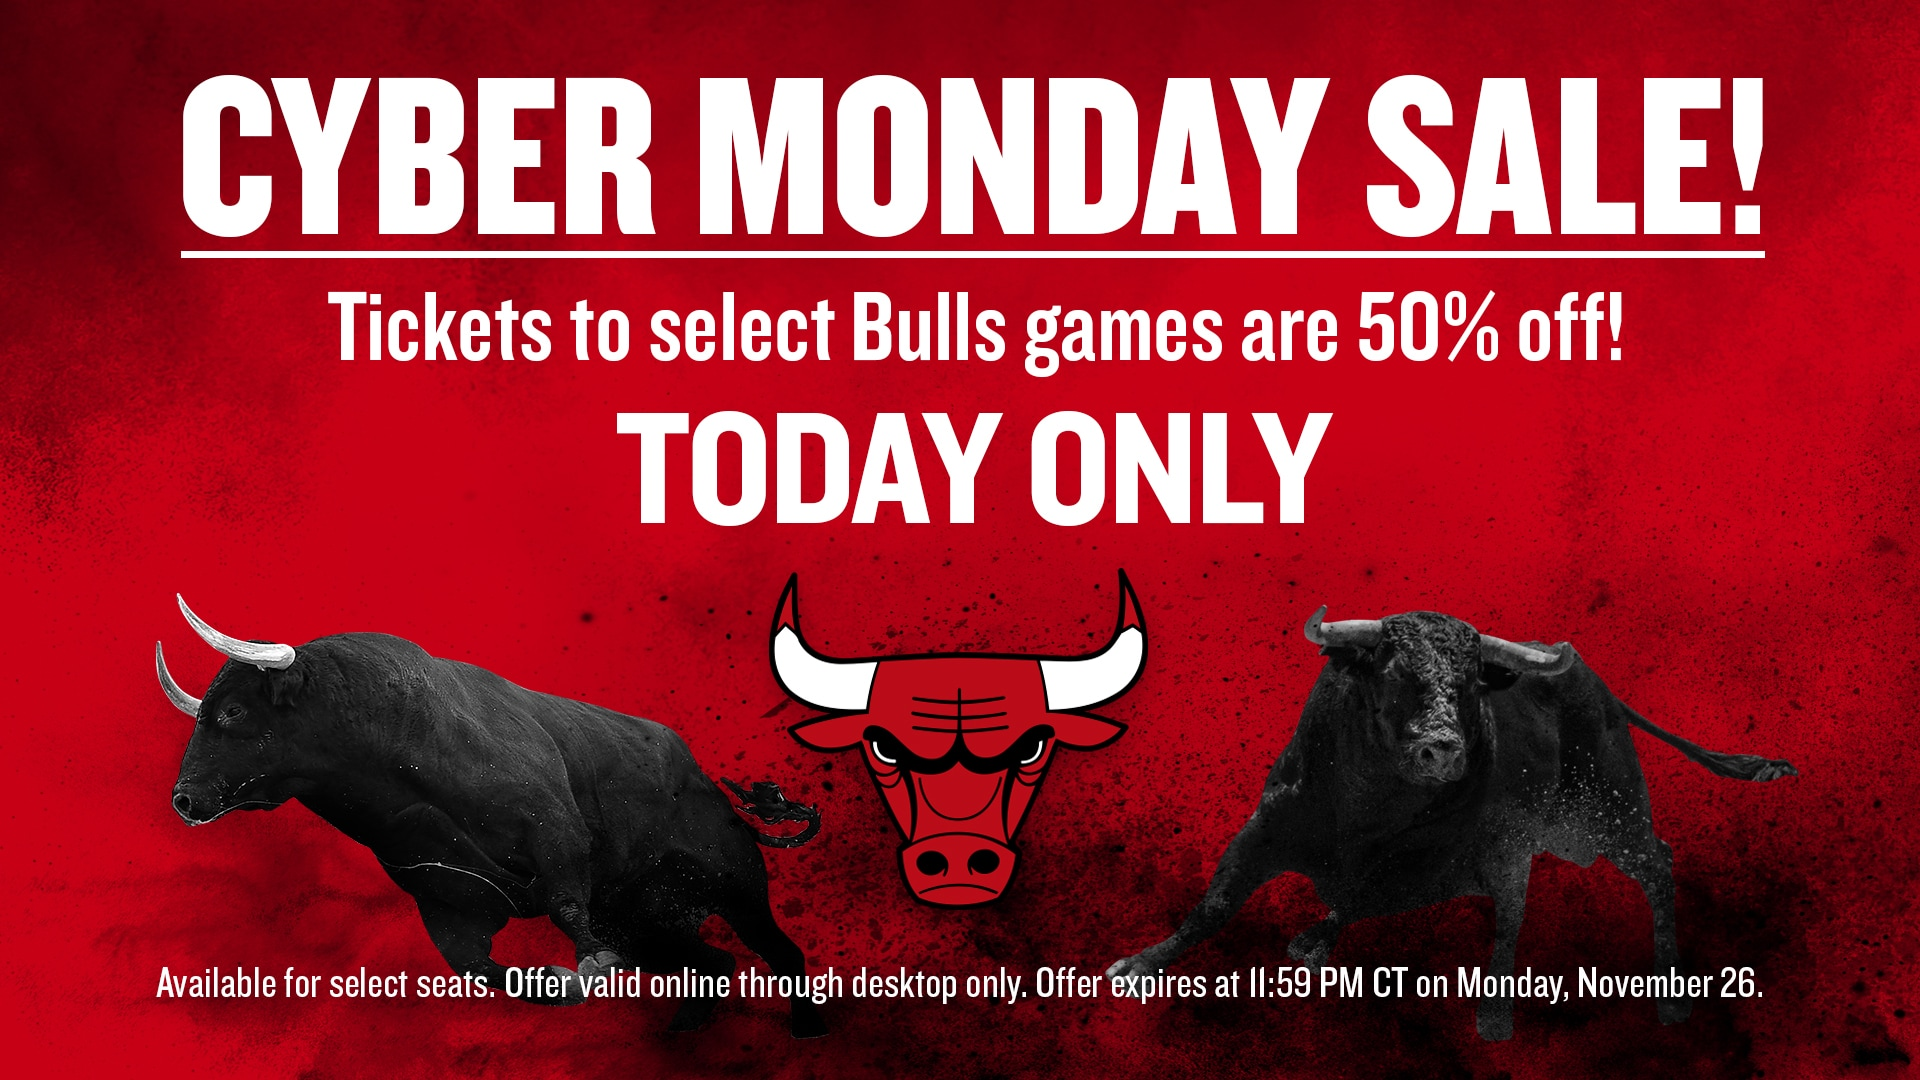 Cyber Monday Ticket Offer